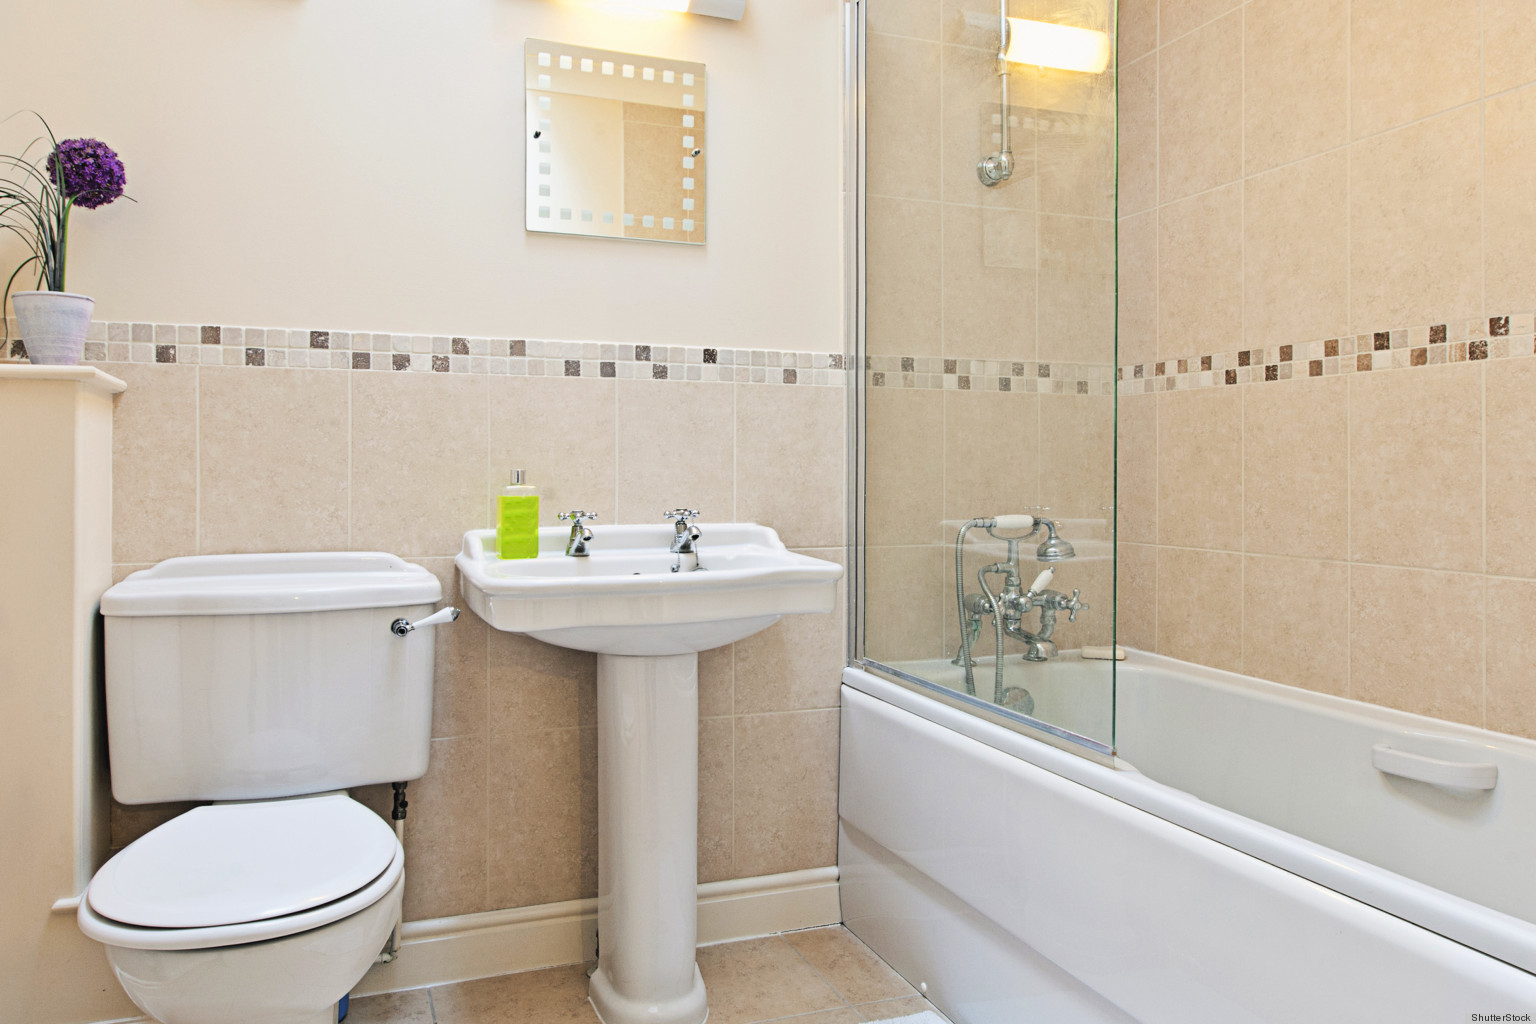 end of tenancy -Bathroom cleaning by Maxipowercleaning